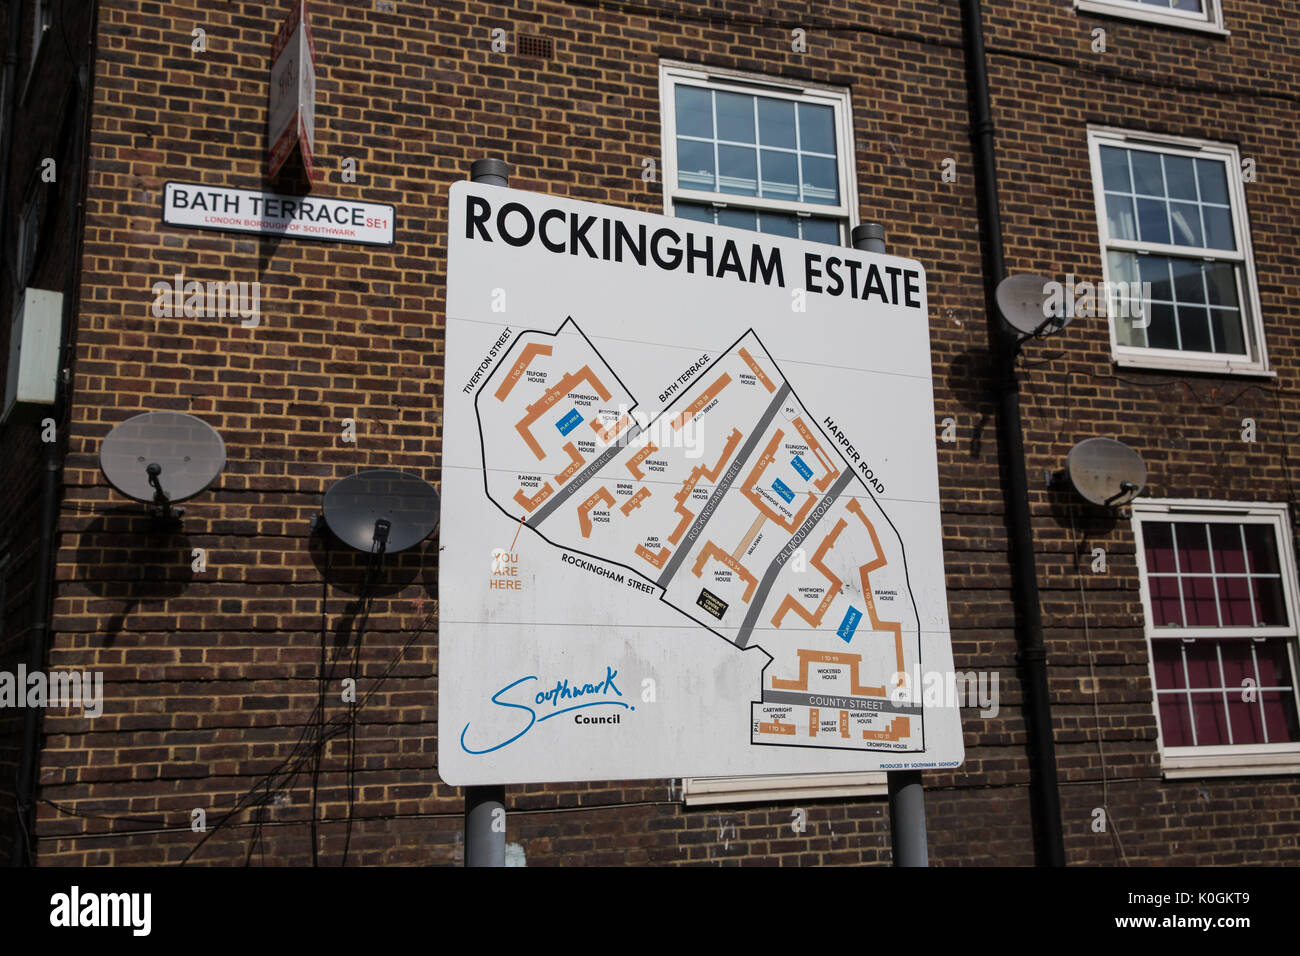 London, UK. 14th August, 2017. A sign indicating the Rockingham Estate in Southwark. The Rockingham Estate is one Stock Photo